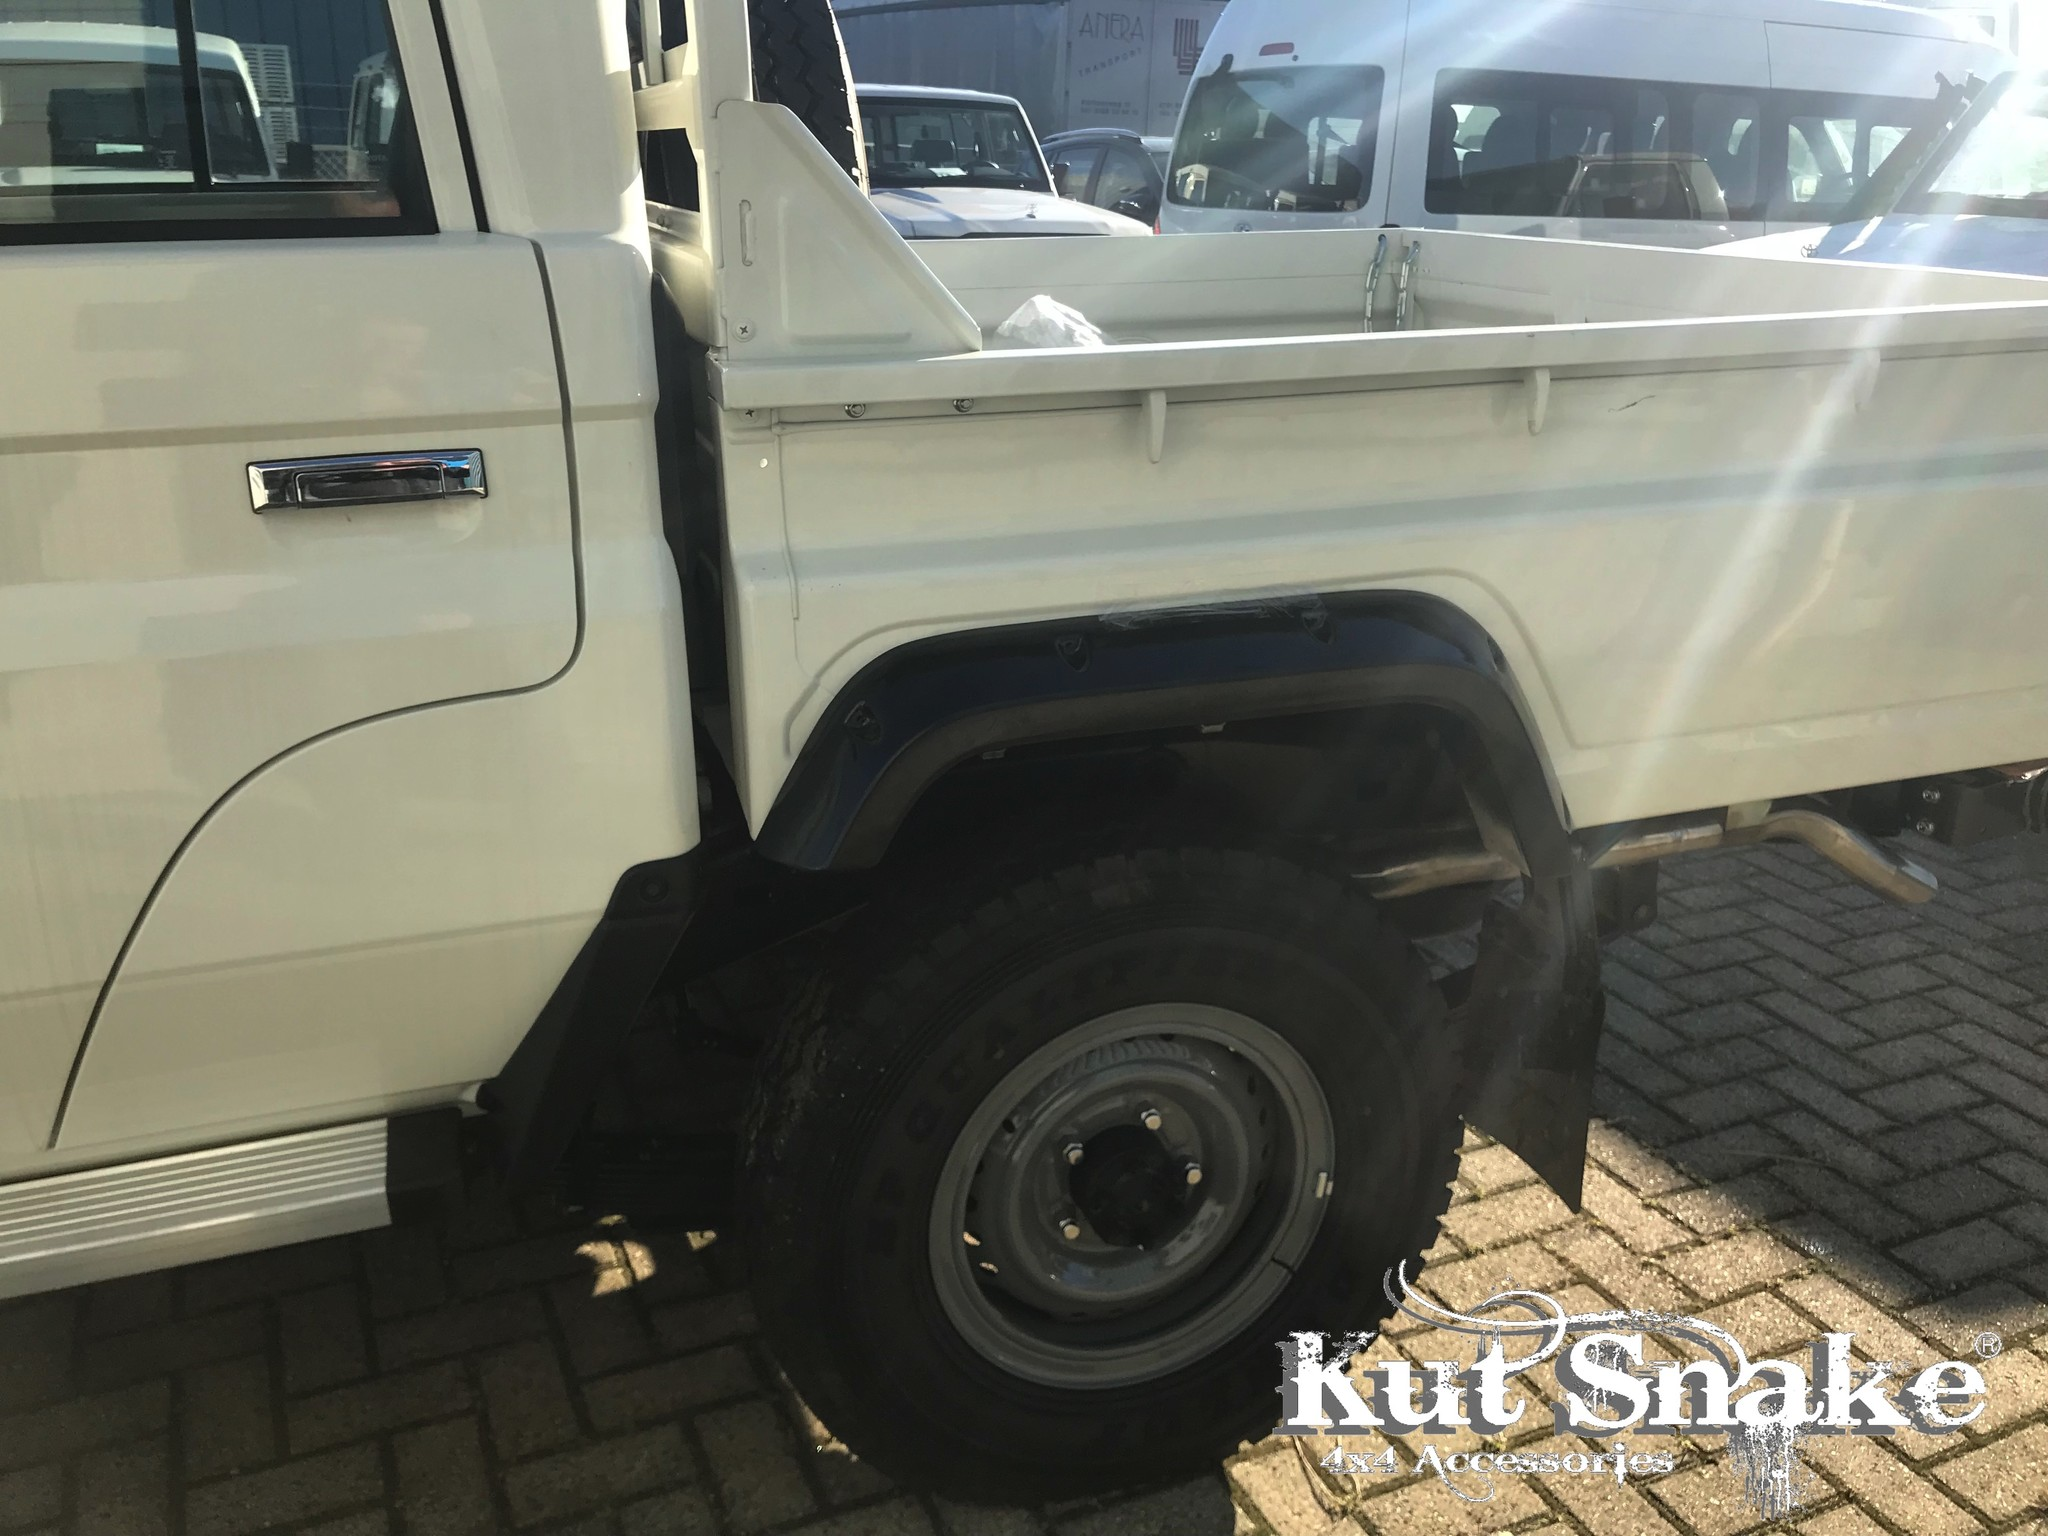 Toyota  Toyota Land Cruiser 79 pick-up truck met dubbele cabine